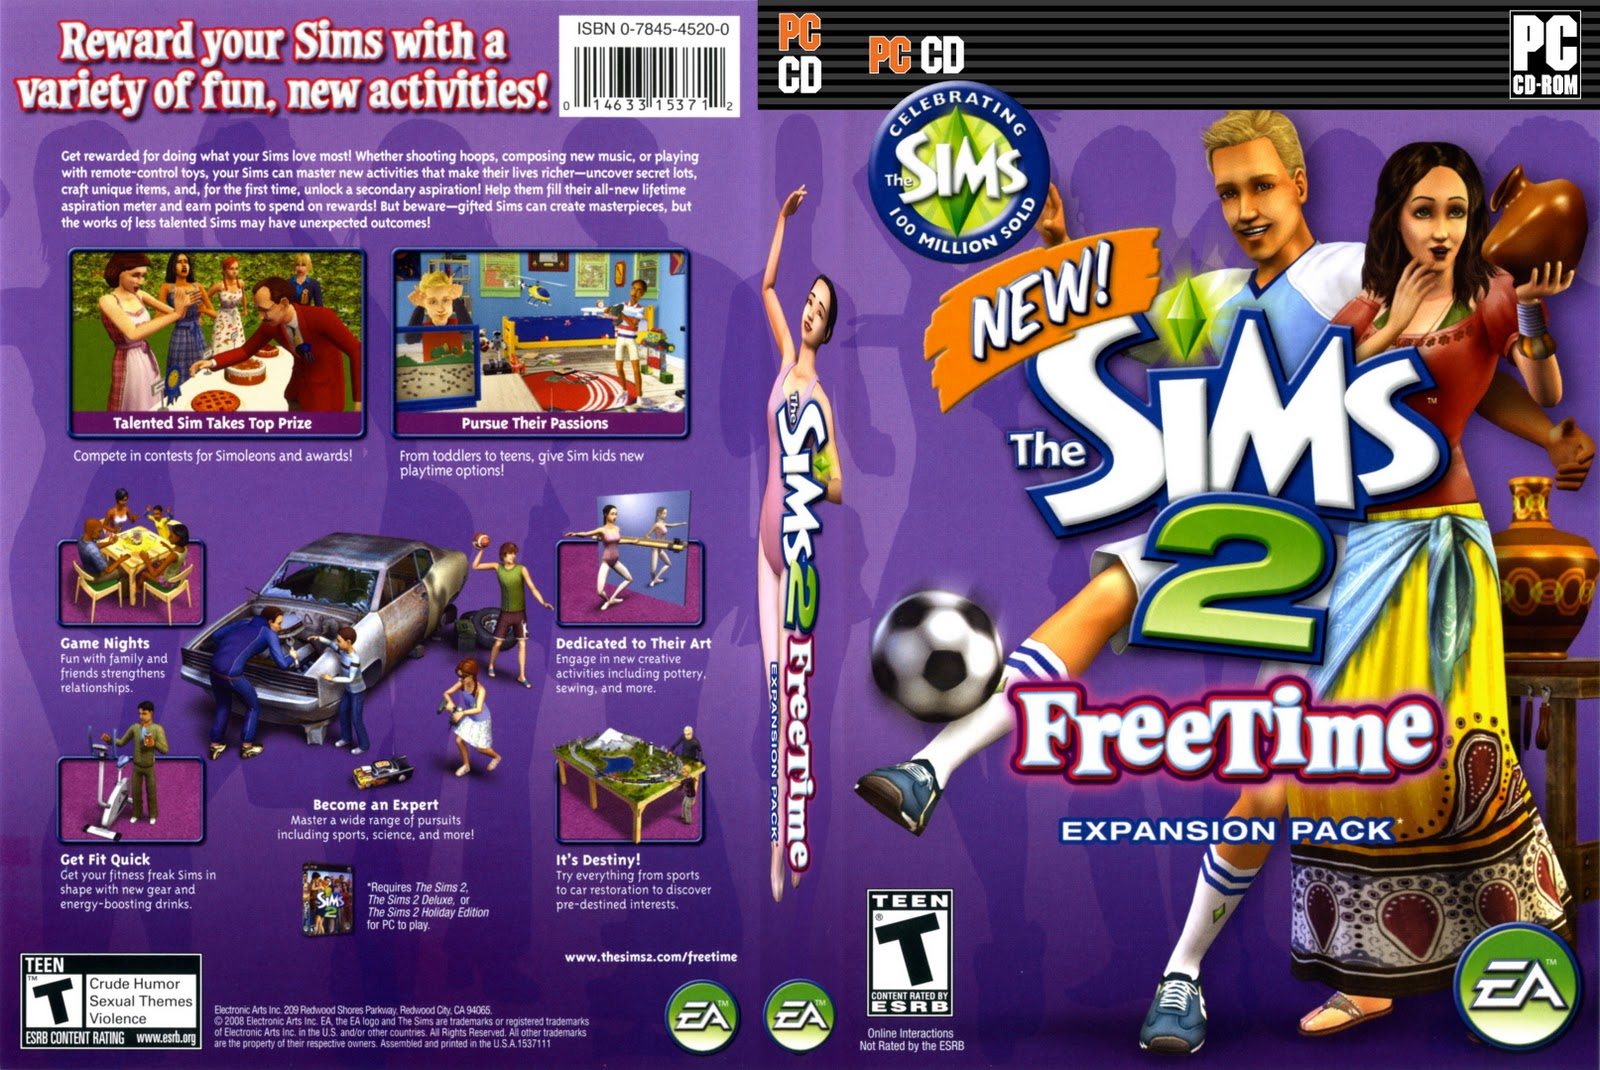 The sims 2 freetime 28pc 29 2.